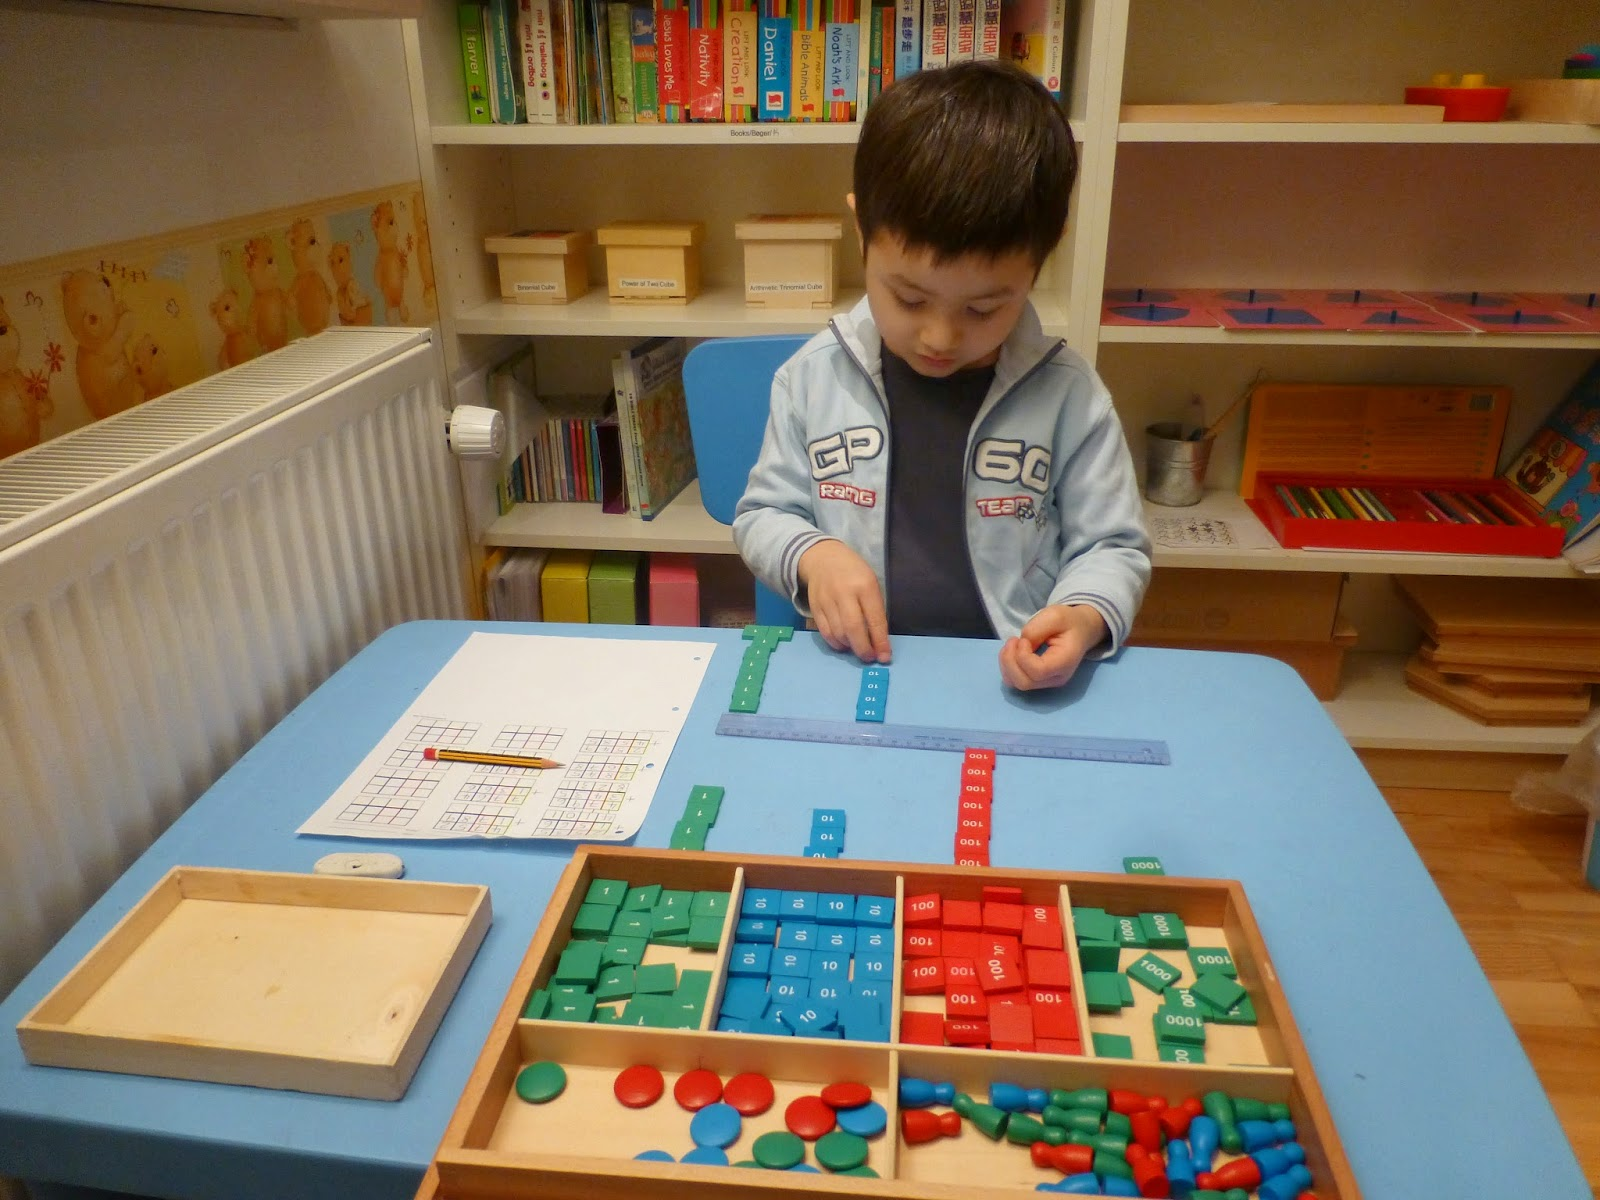 importance of maths in montessori Home » programs » montessori parent education » montessori - the prepared environment montessori - the prepared environment part seven of a nine part series of montessori parent education newsletters.